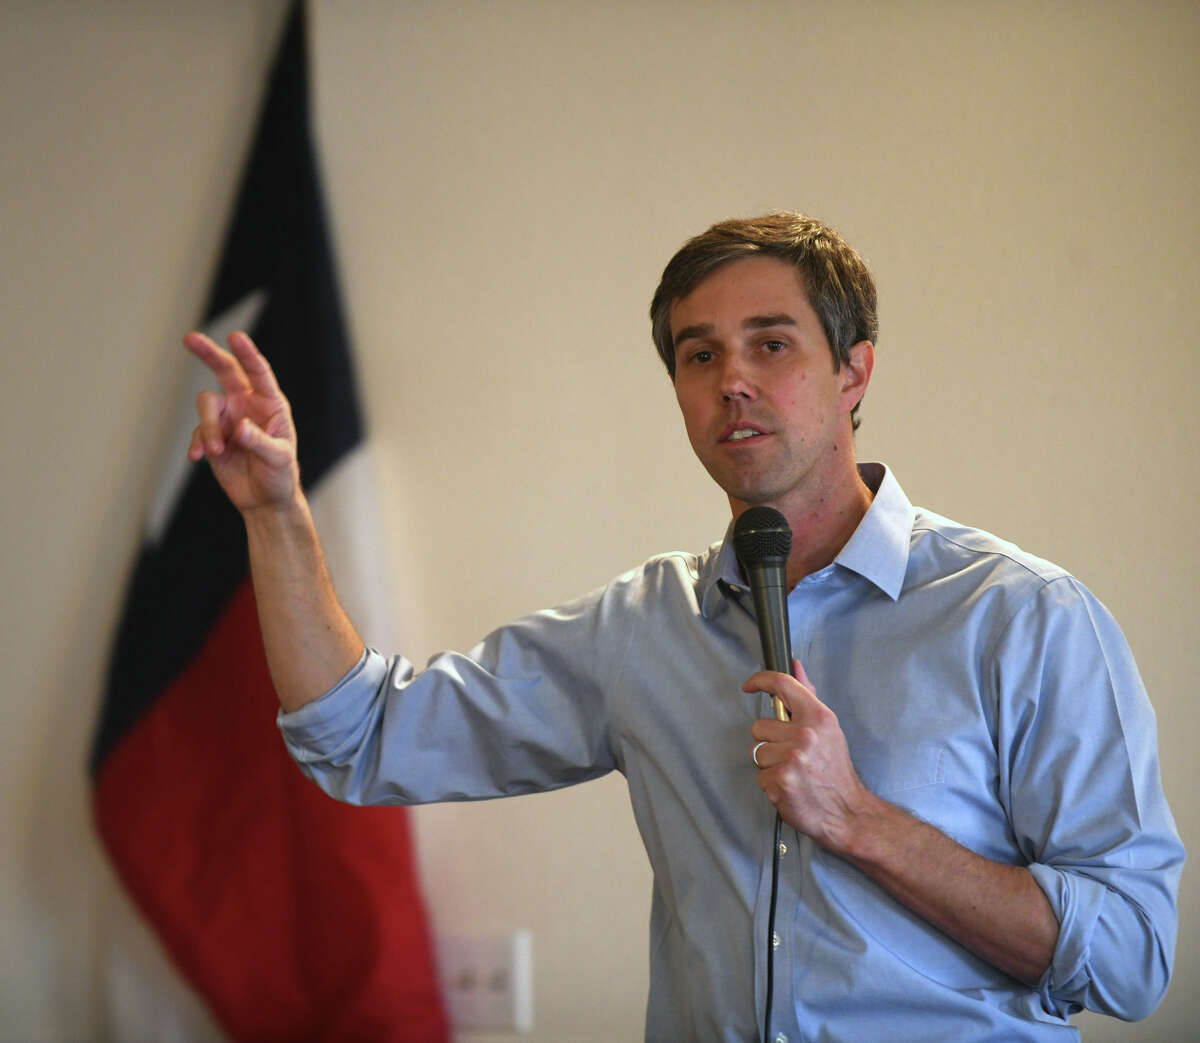 Beto O'Rourke, Democratic Party candidate for U.S. Senator from El Paso, answers questions from those attending a town hall meeting Wednesday at the Gertrude Bruce Community Center. About 100 people turned out for the event.